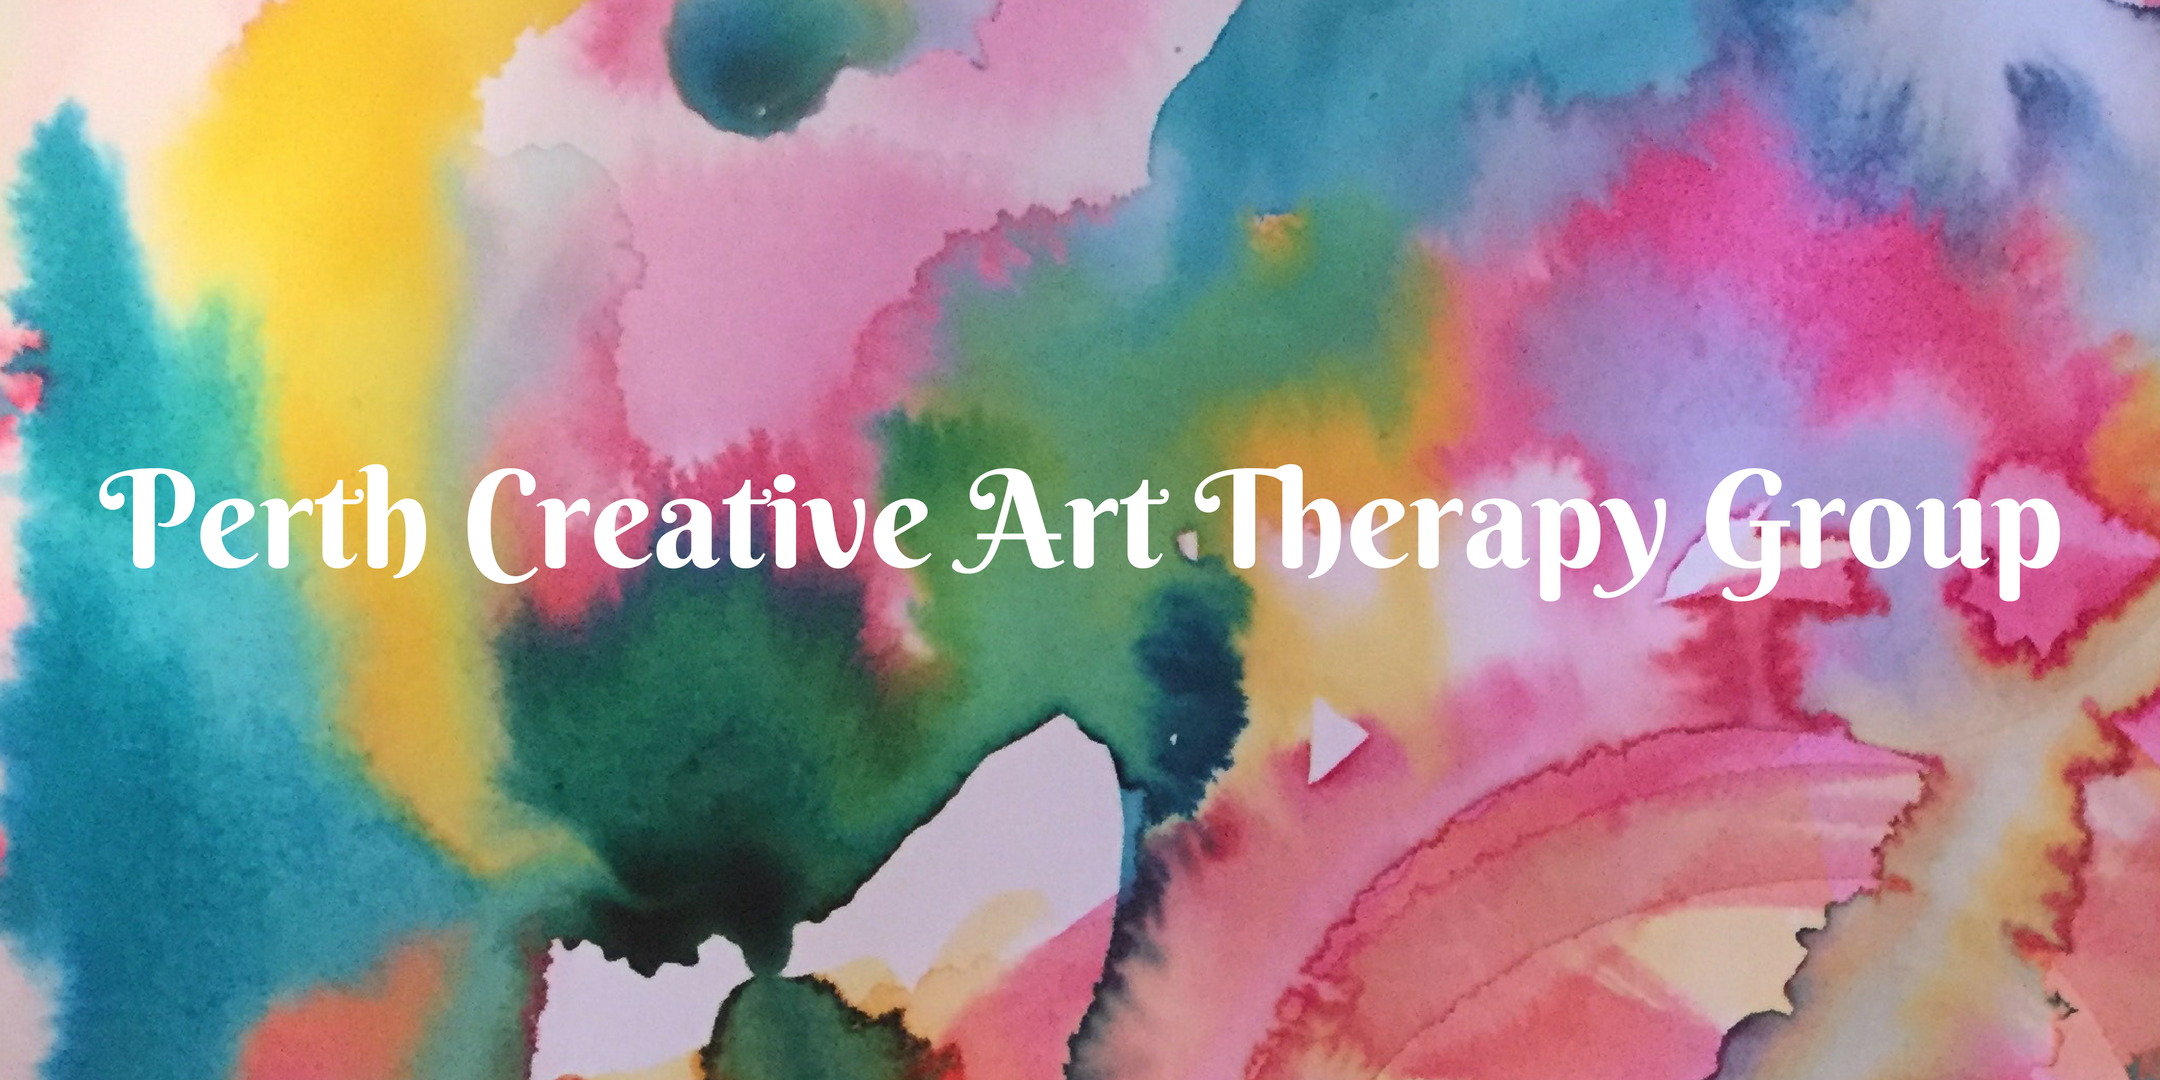 Perth Creative Art Therapy Group